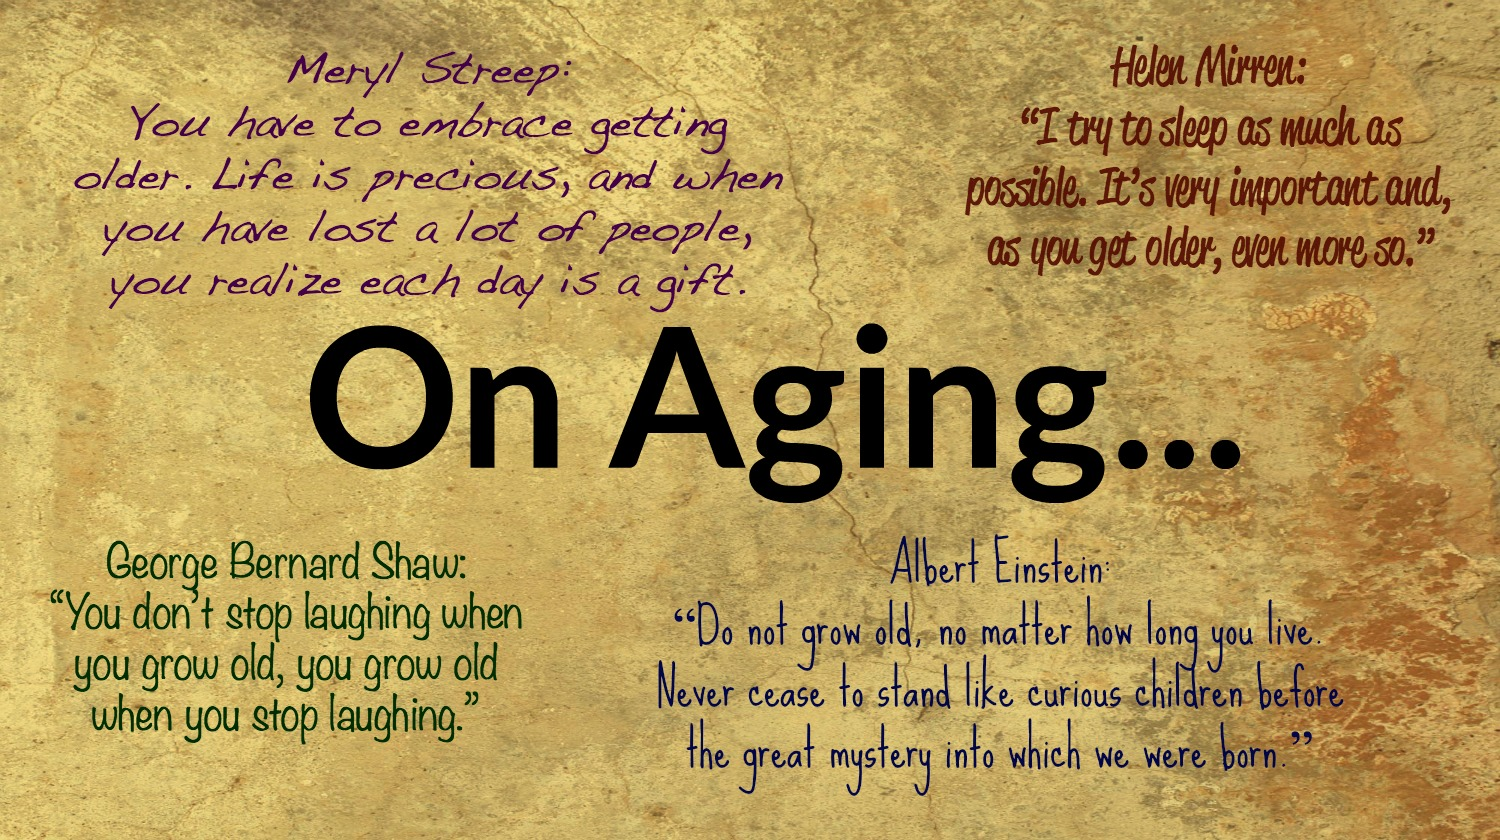 Quotes About Growing Old 7 Inspirational Quotes For Aging Gracefully  Midlife Boulevard